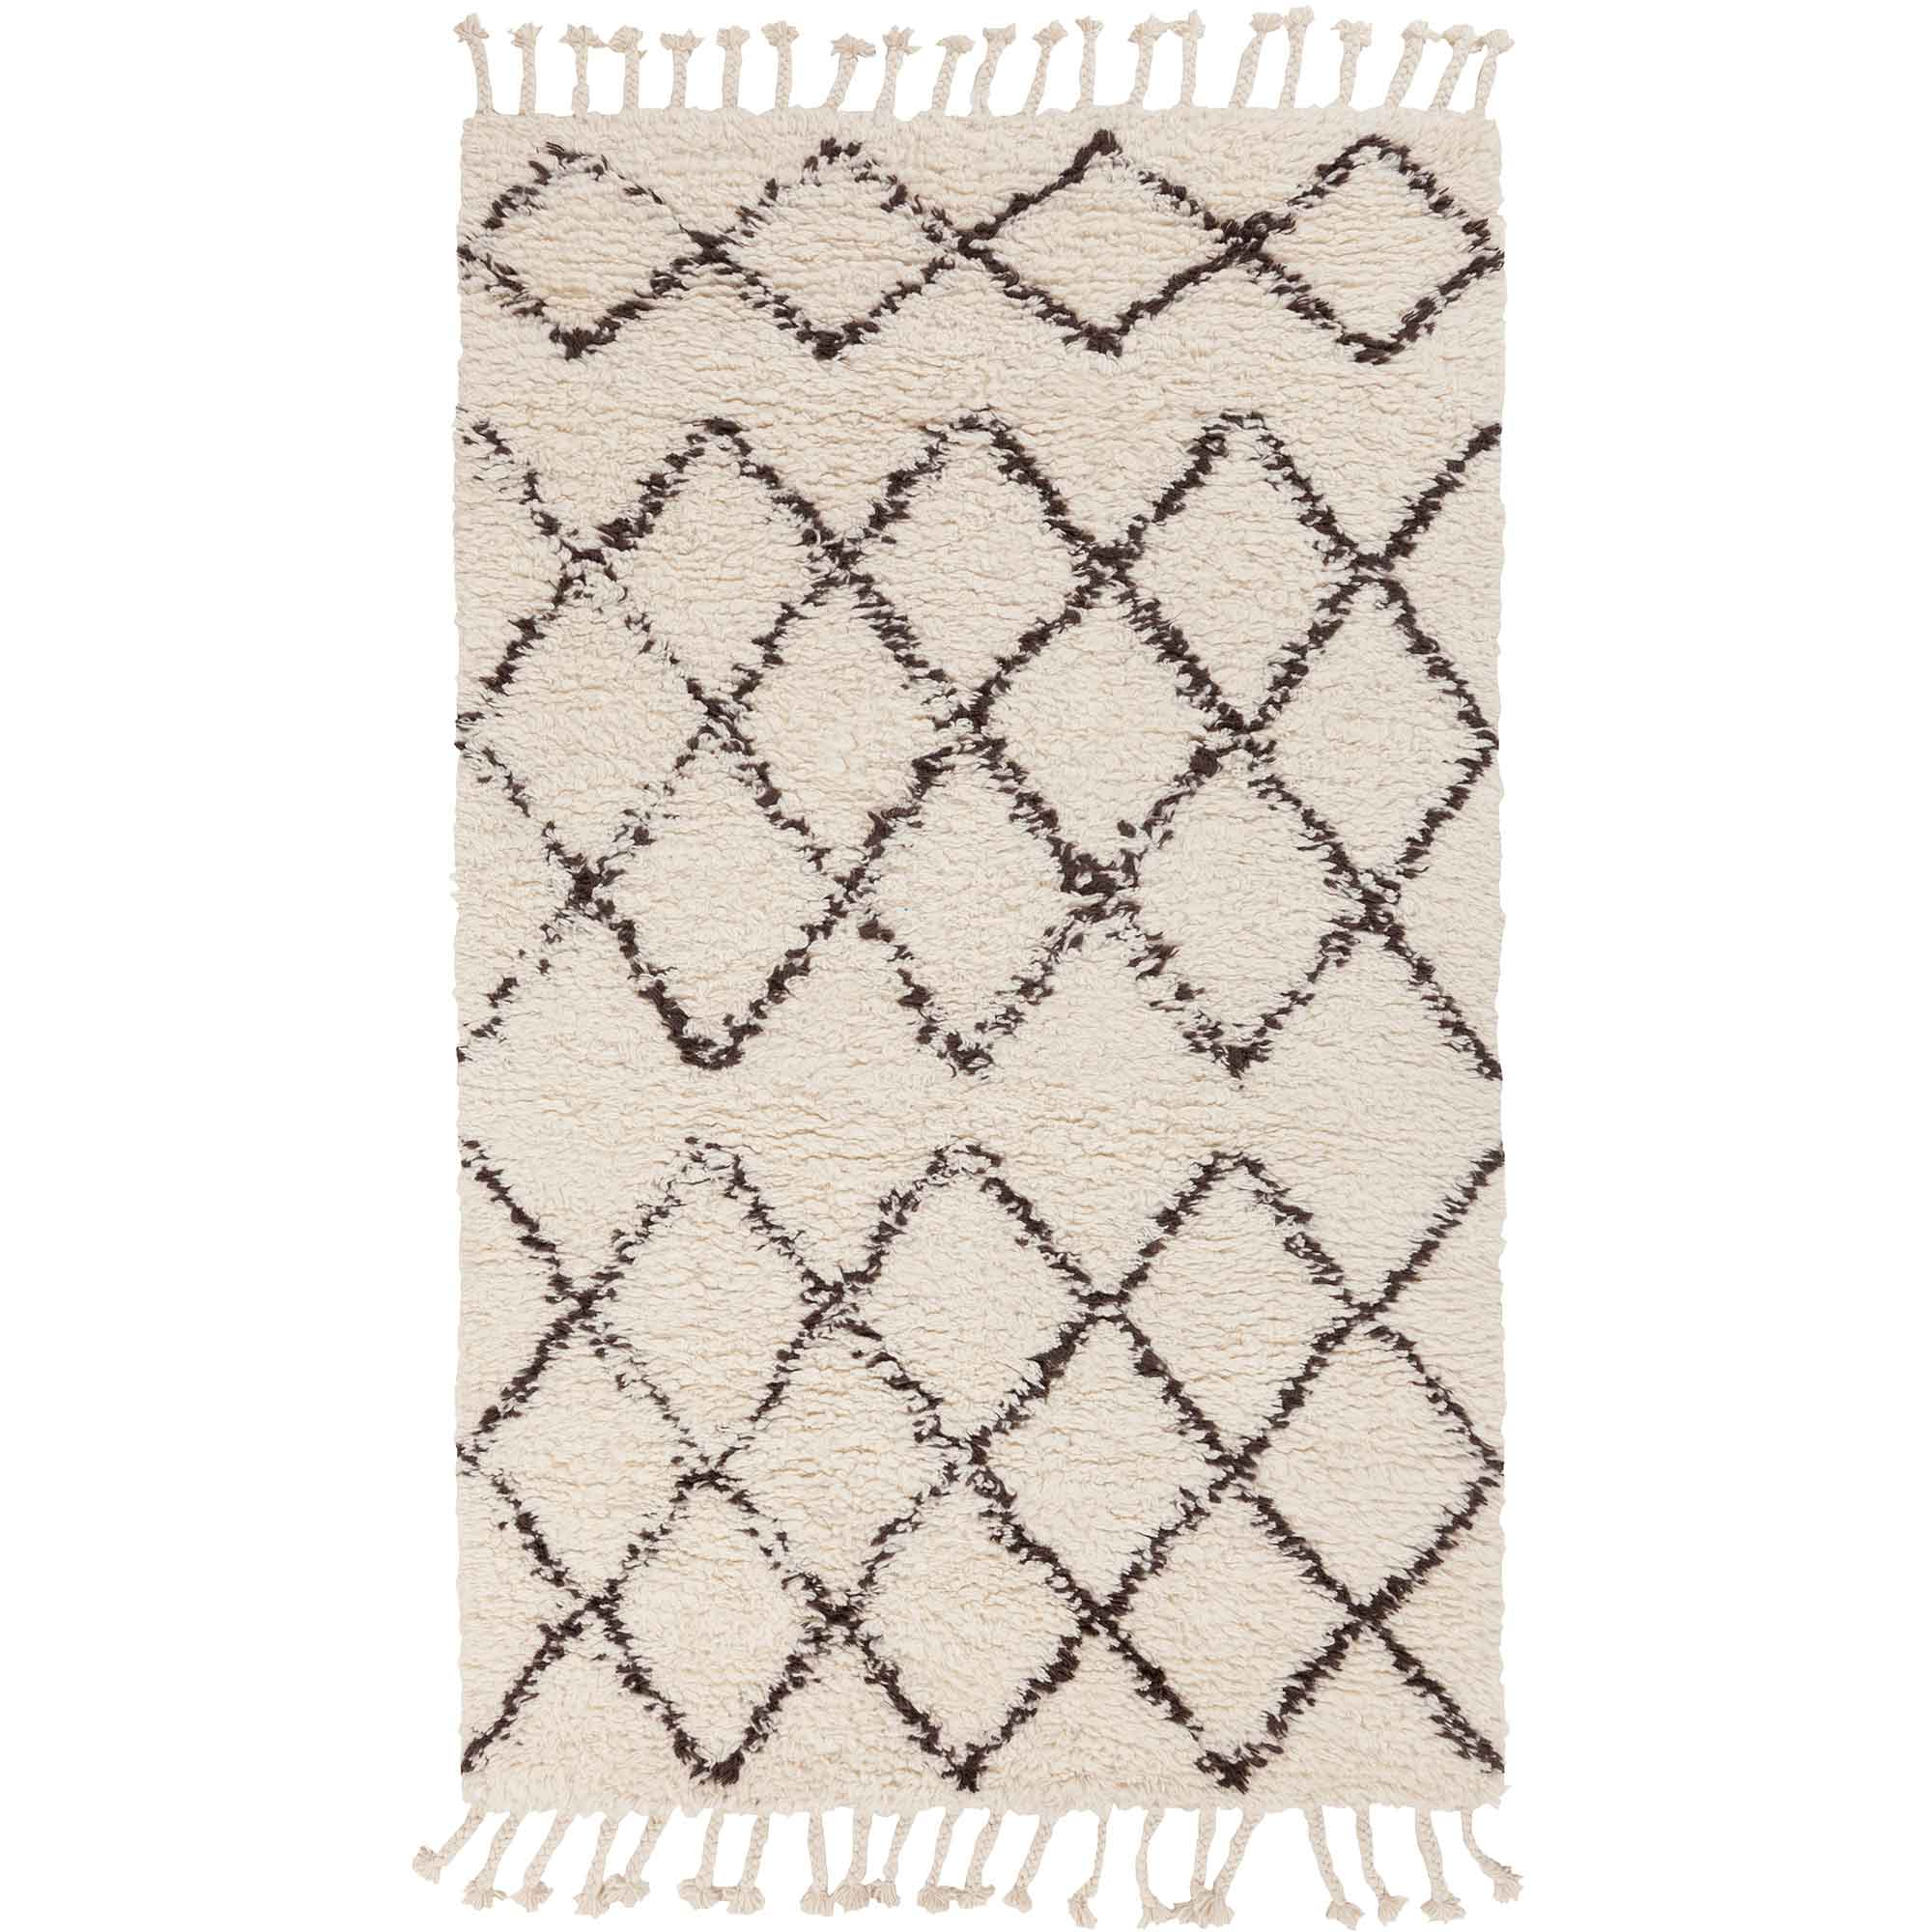 junktion road midcentury style rugs out bohemian lowes review deck grandin ru and pad furniture polypropylene area it outdoor rug with overstock